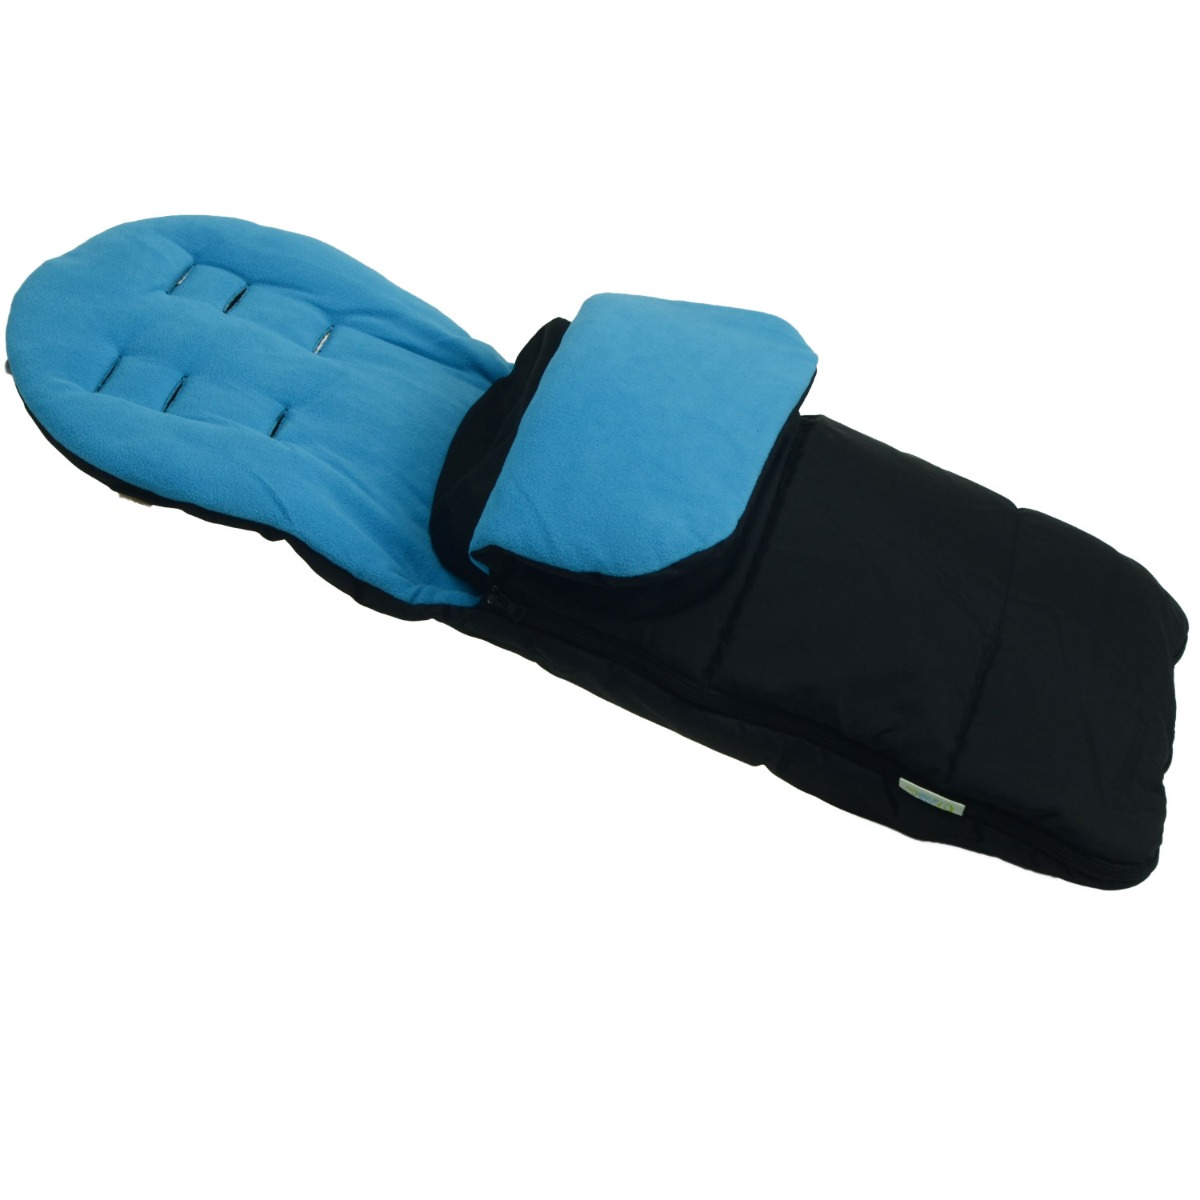 Universal-Pushchair-Footmuff-Cosytoes-Fleece-Lined-Fit-For-Stroller-Prams-Buggy thumbnail 34